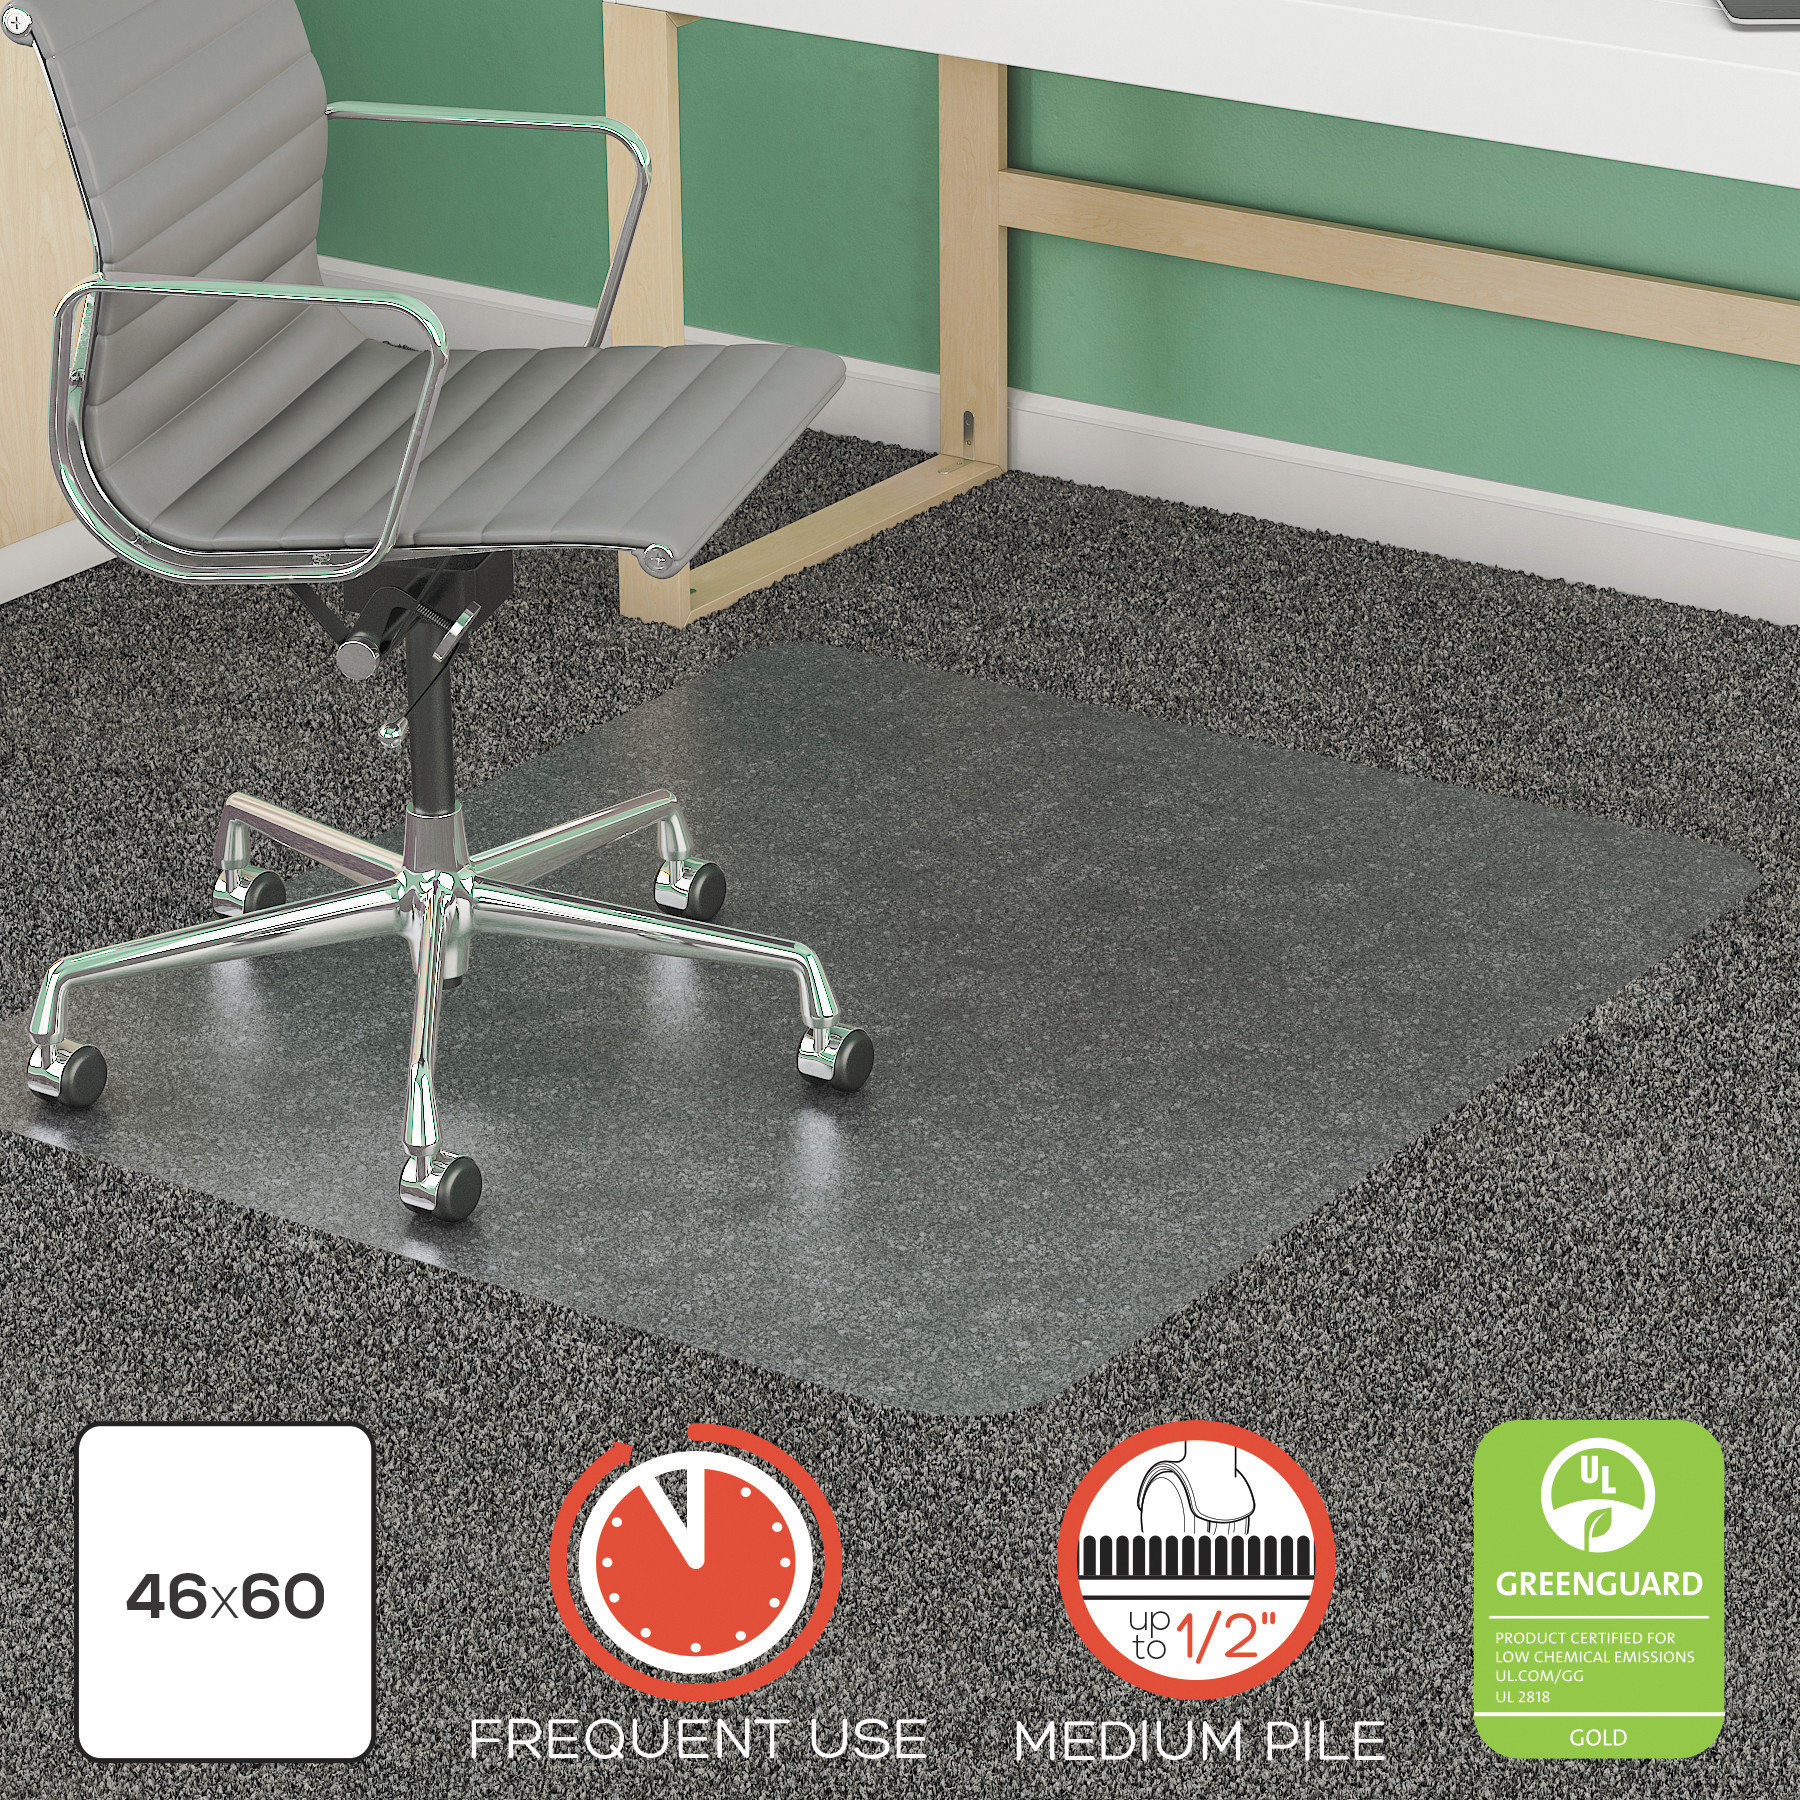 deflecto SuperMat Frequent Use Chair Mat, Med Pile Carpet, Roll, 46 x 60, Rectangle, CR -DEFCM14443FCOM